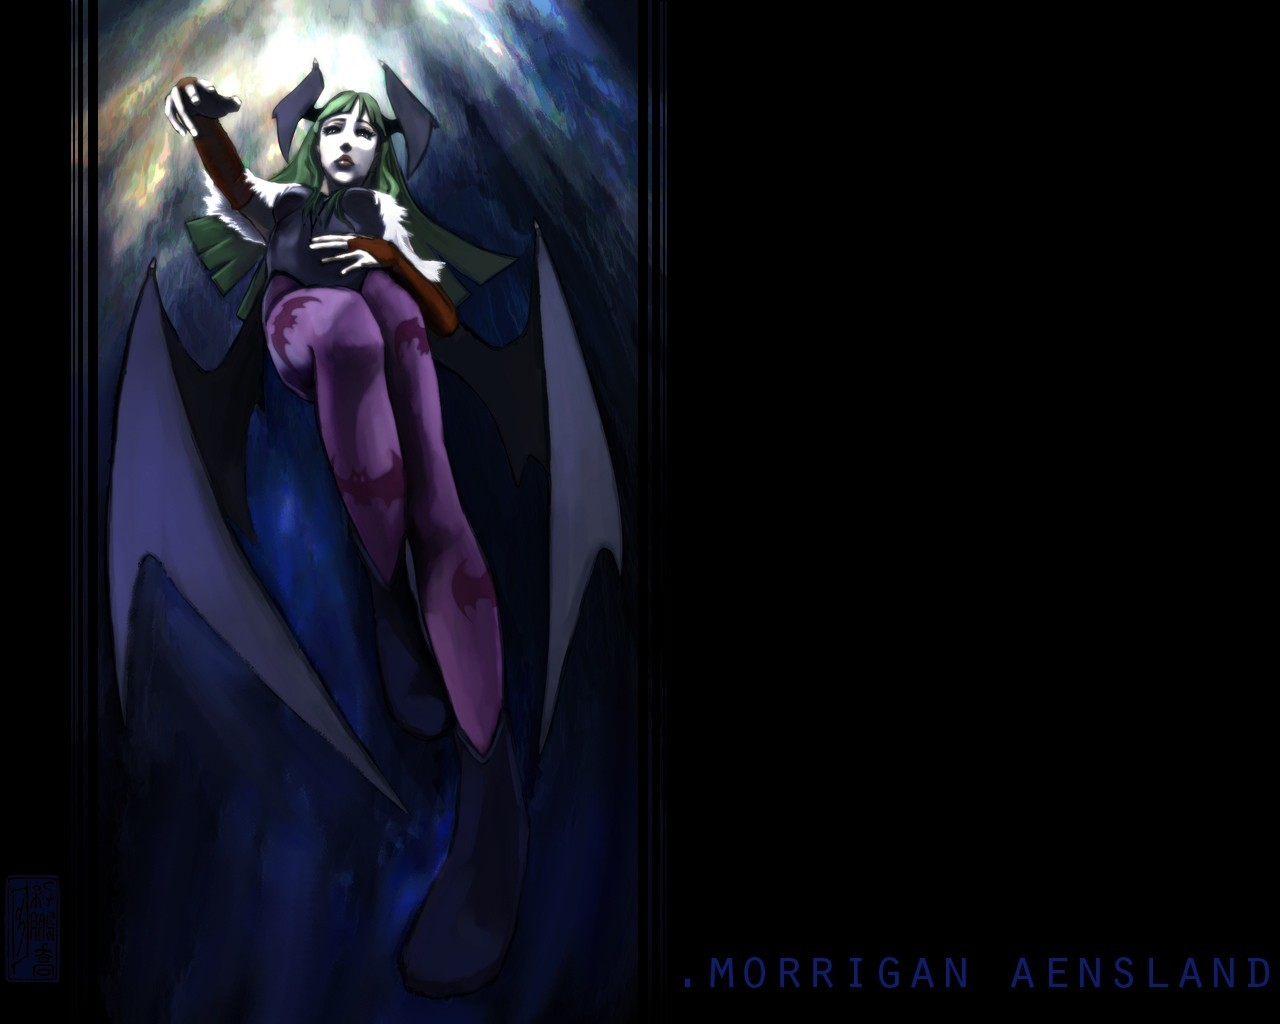 Morrigan Aensland Darkstalkers video HD Wallpaper